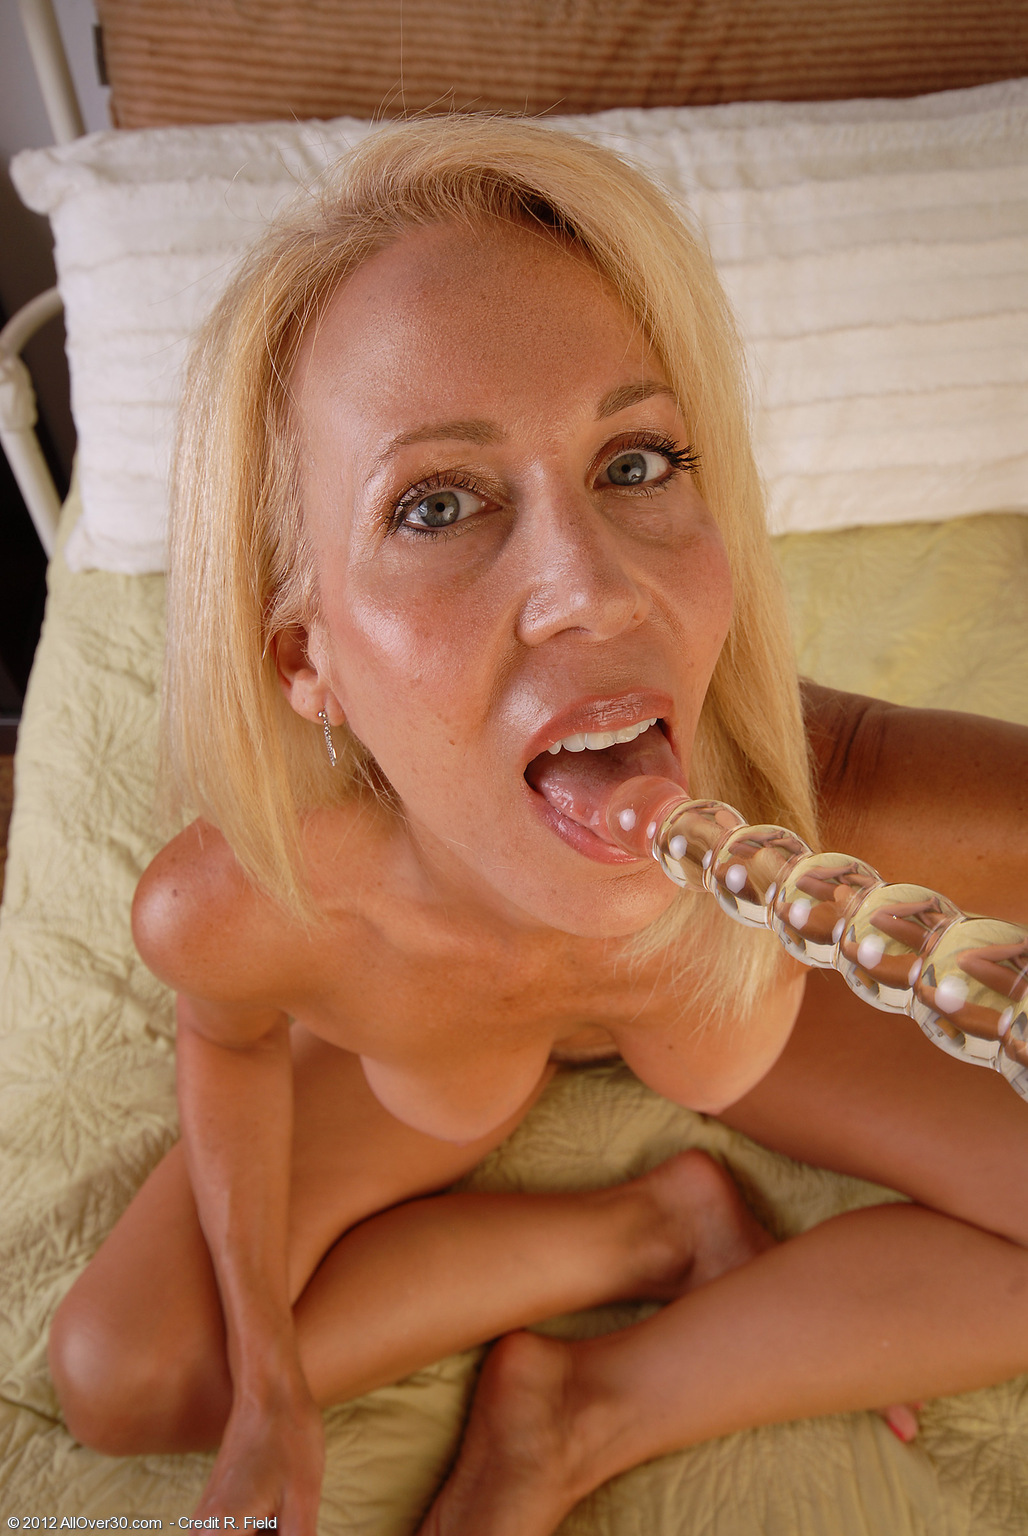 Erica Big Glass Toy at AllOver30 Free